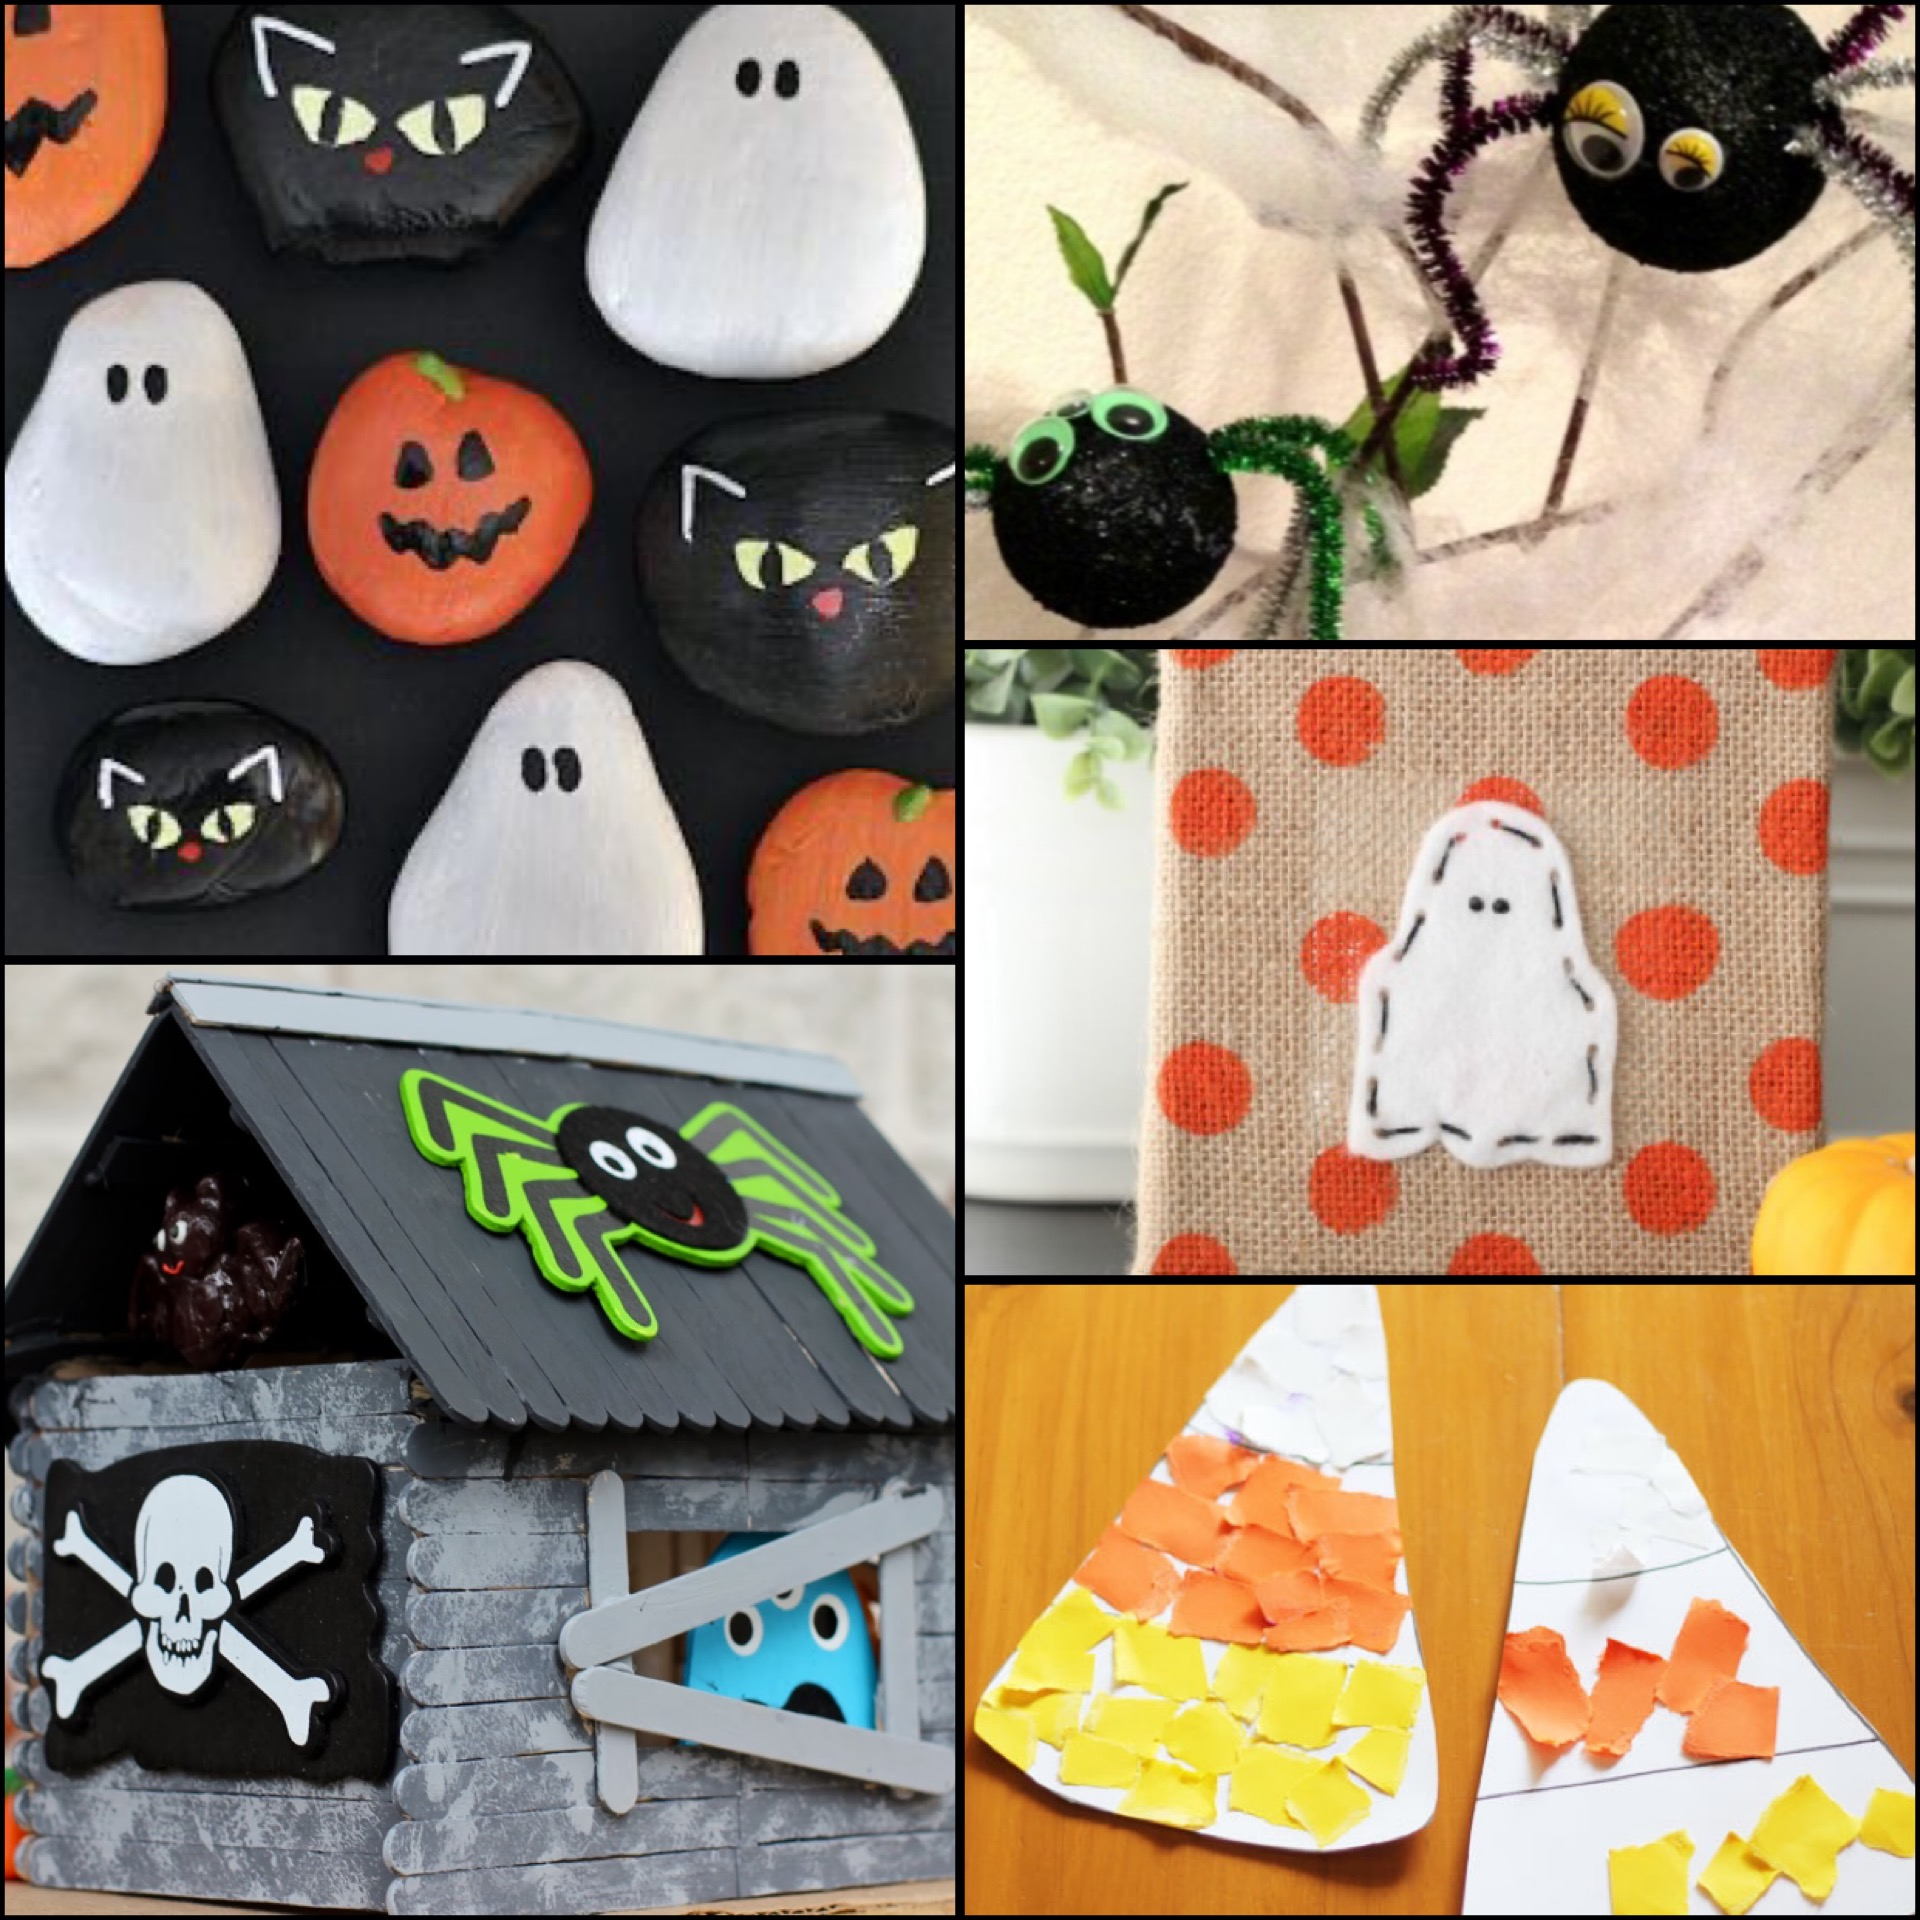 Halloween Crafts The Kids Will Love!